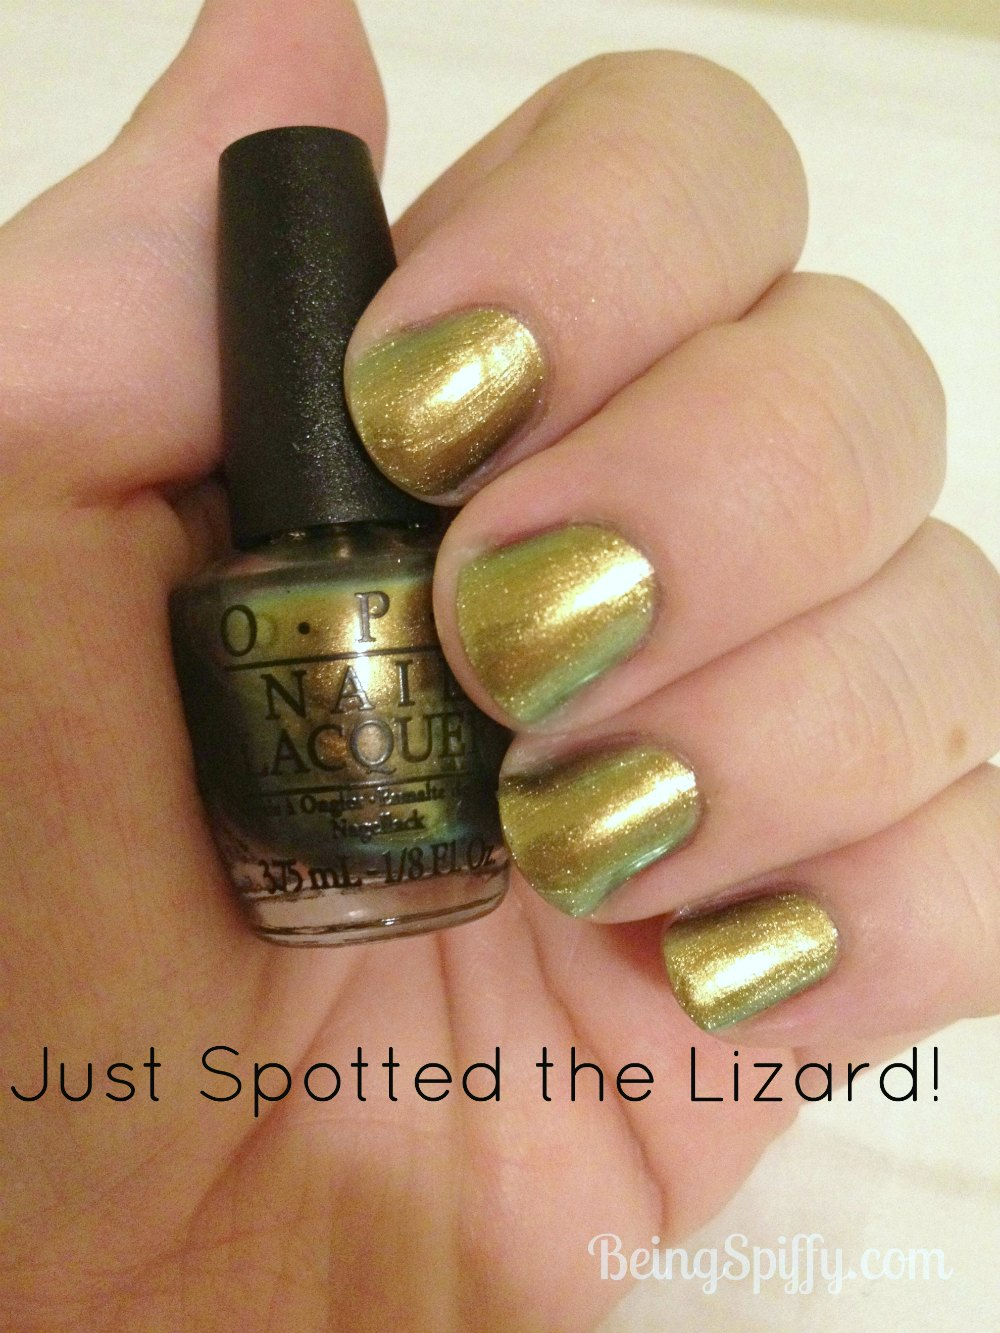 OPI_just_spotted_the_lizard.jpg